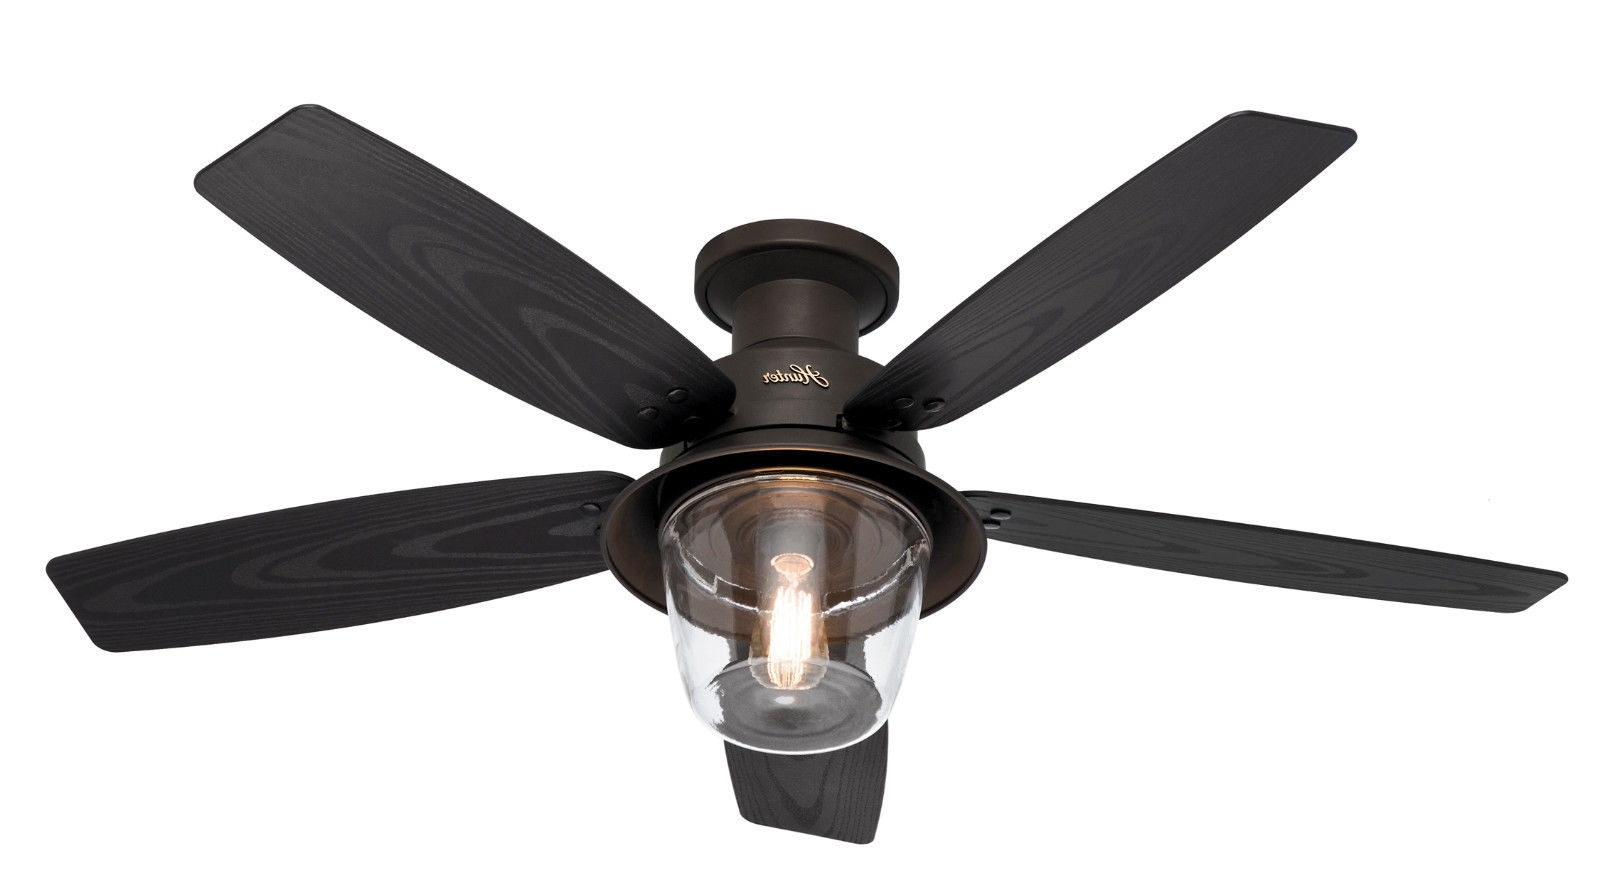 Outdoor Windmill Ceiling Fans With Light In 2019 Ceiling Fan: Antique Rustic Ceiling Fans Design Farmhouse Ceiling (View 17 of 20)